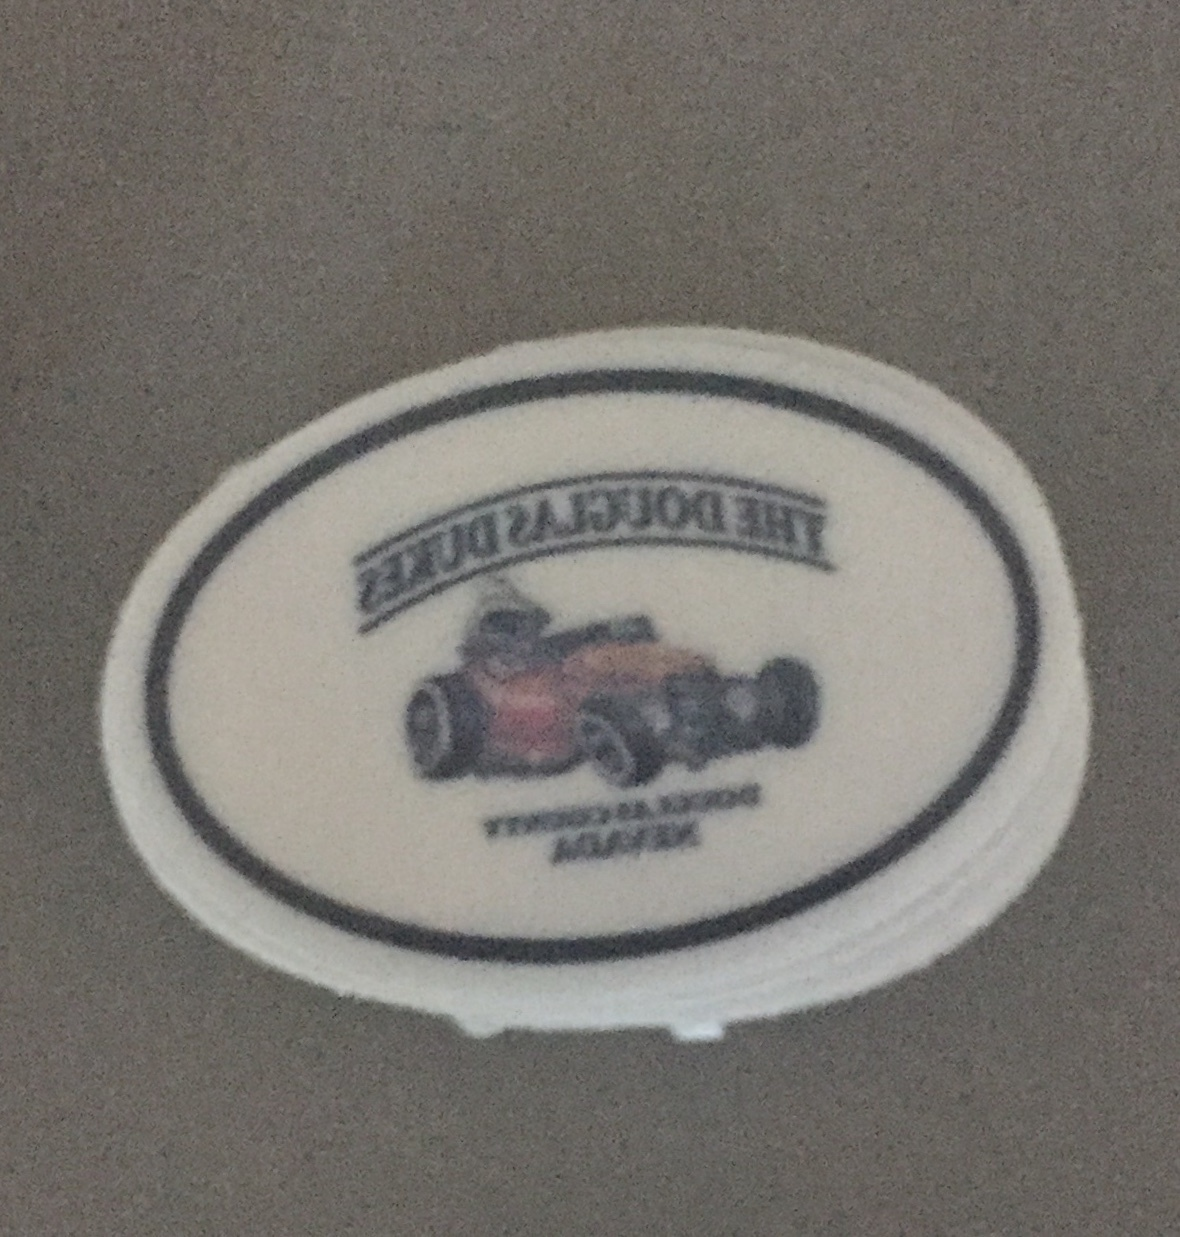 Rich's photograph of their Front Adhesive Stickers